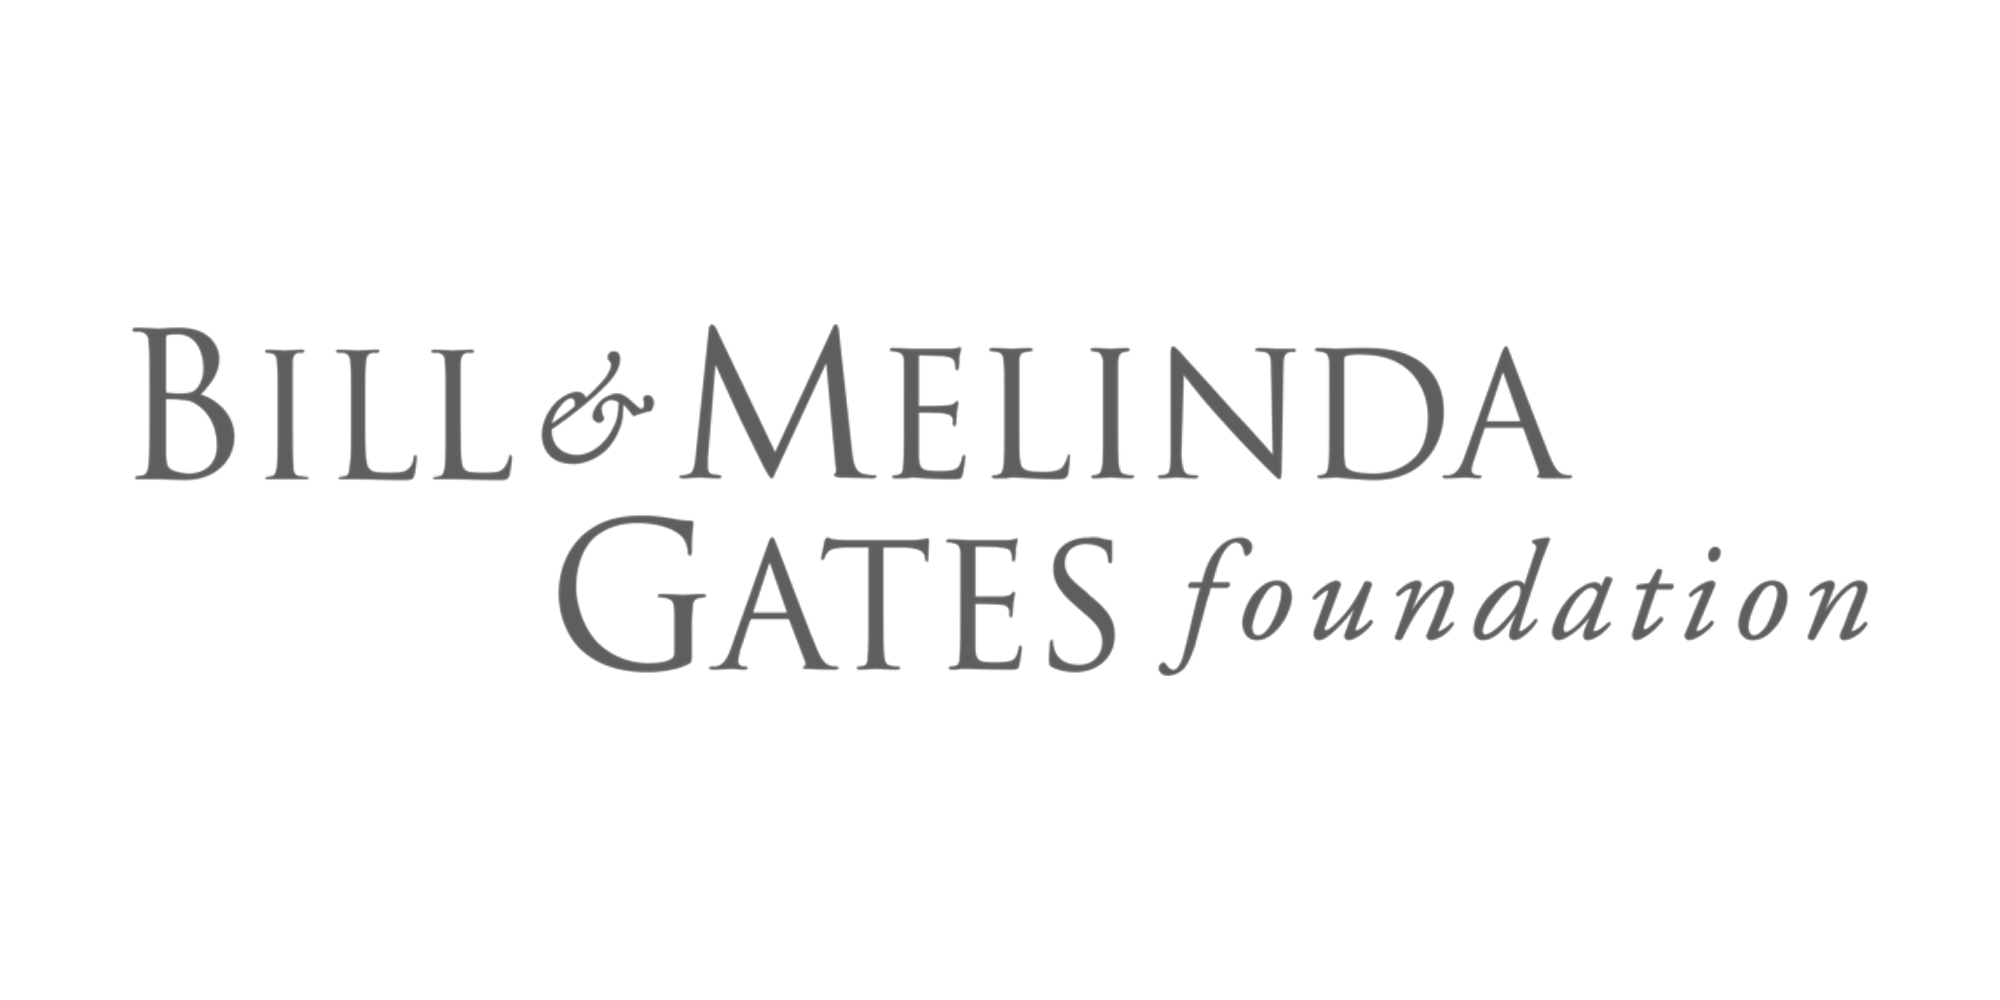 logo - grey - gates foundation